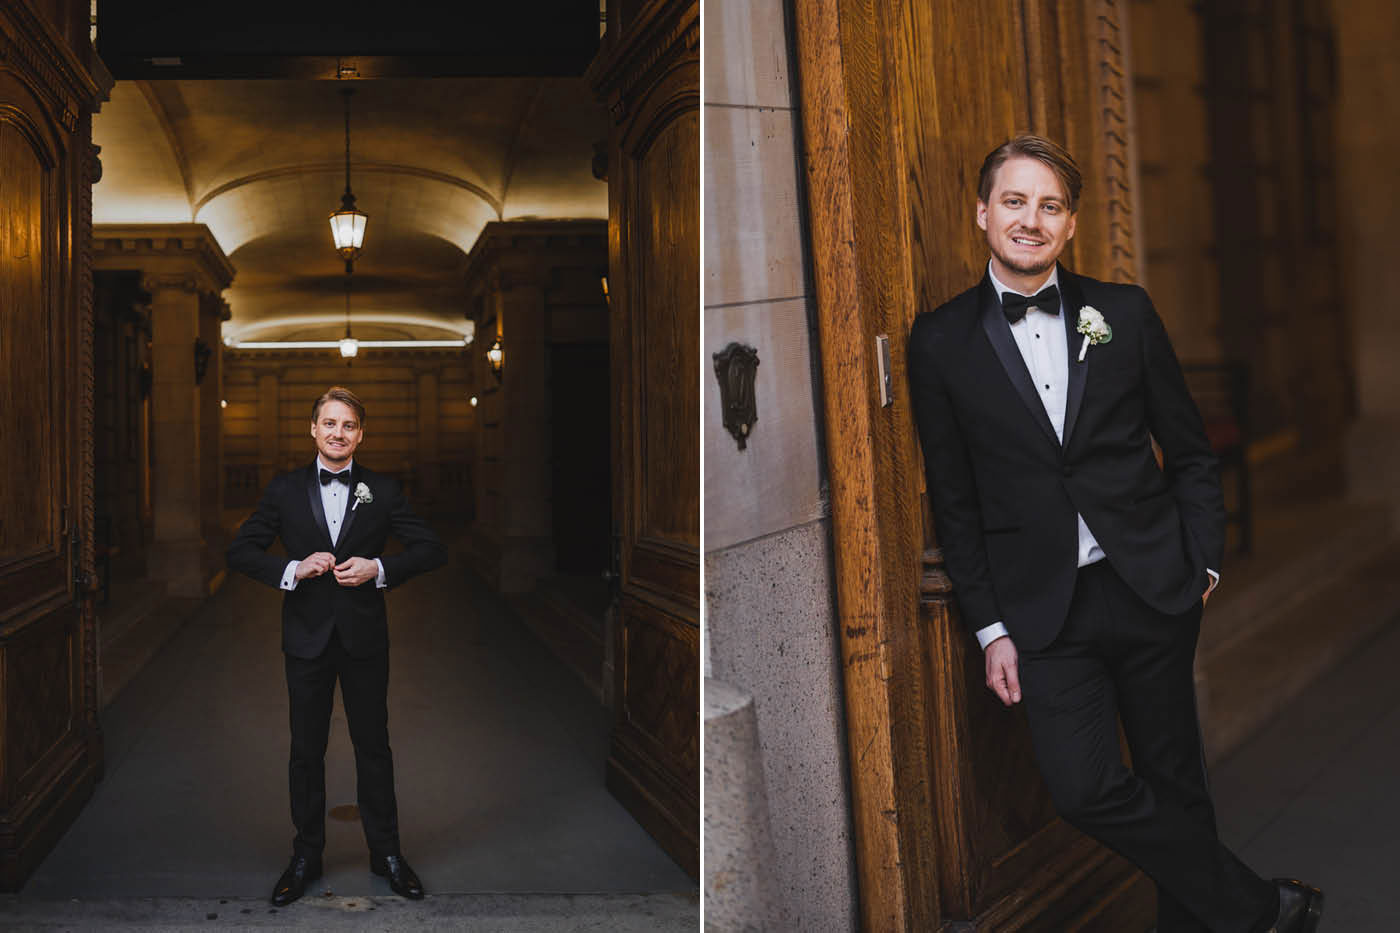 groom portraits at the James Burden Kahn Mansion by Weddings by Hanel